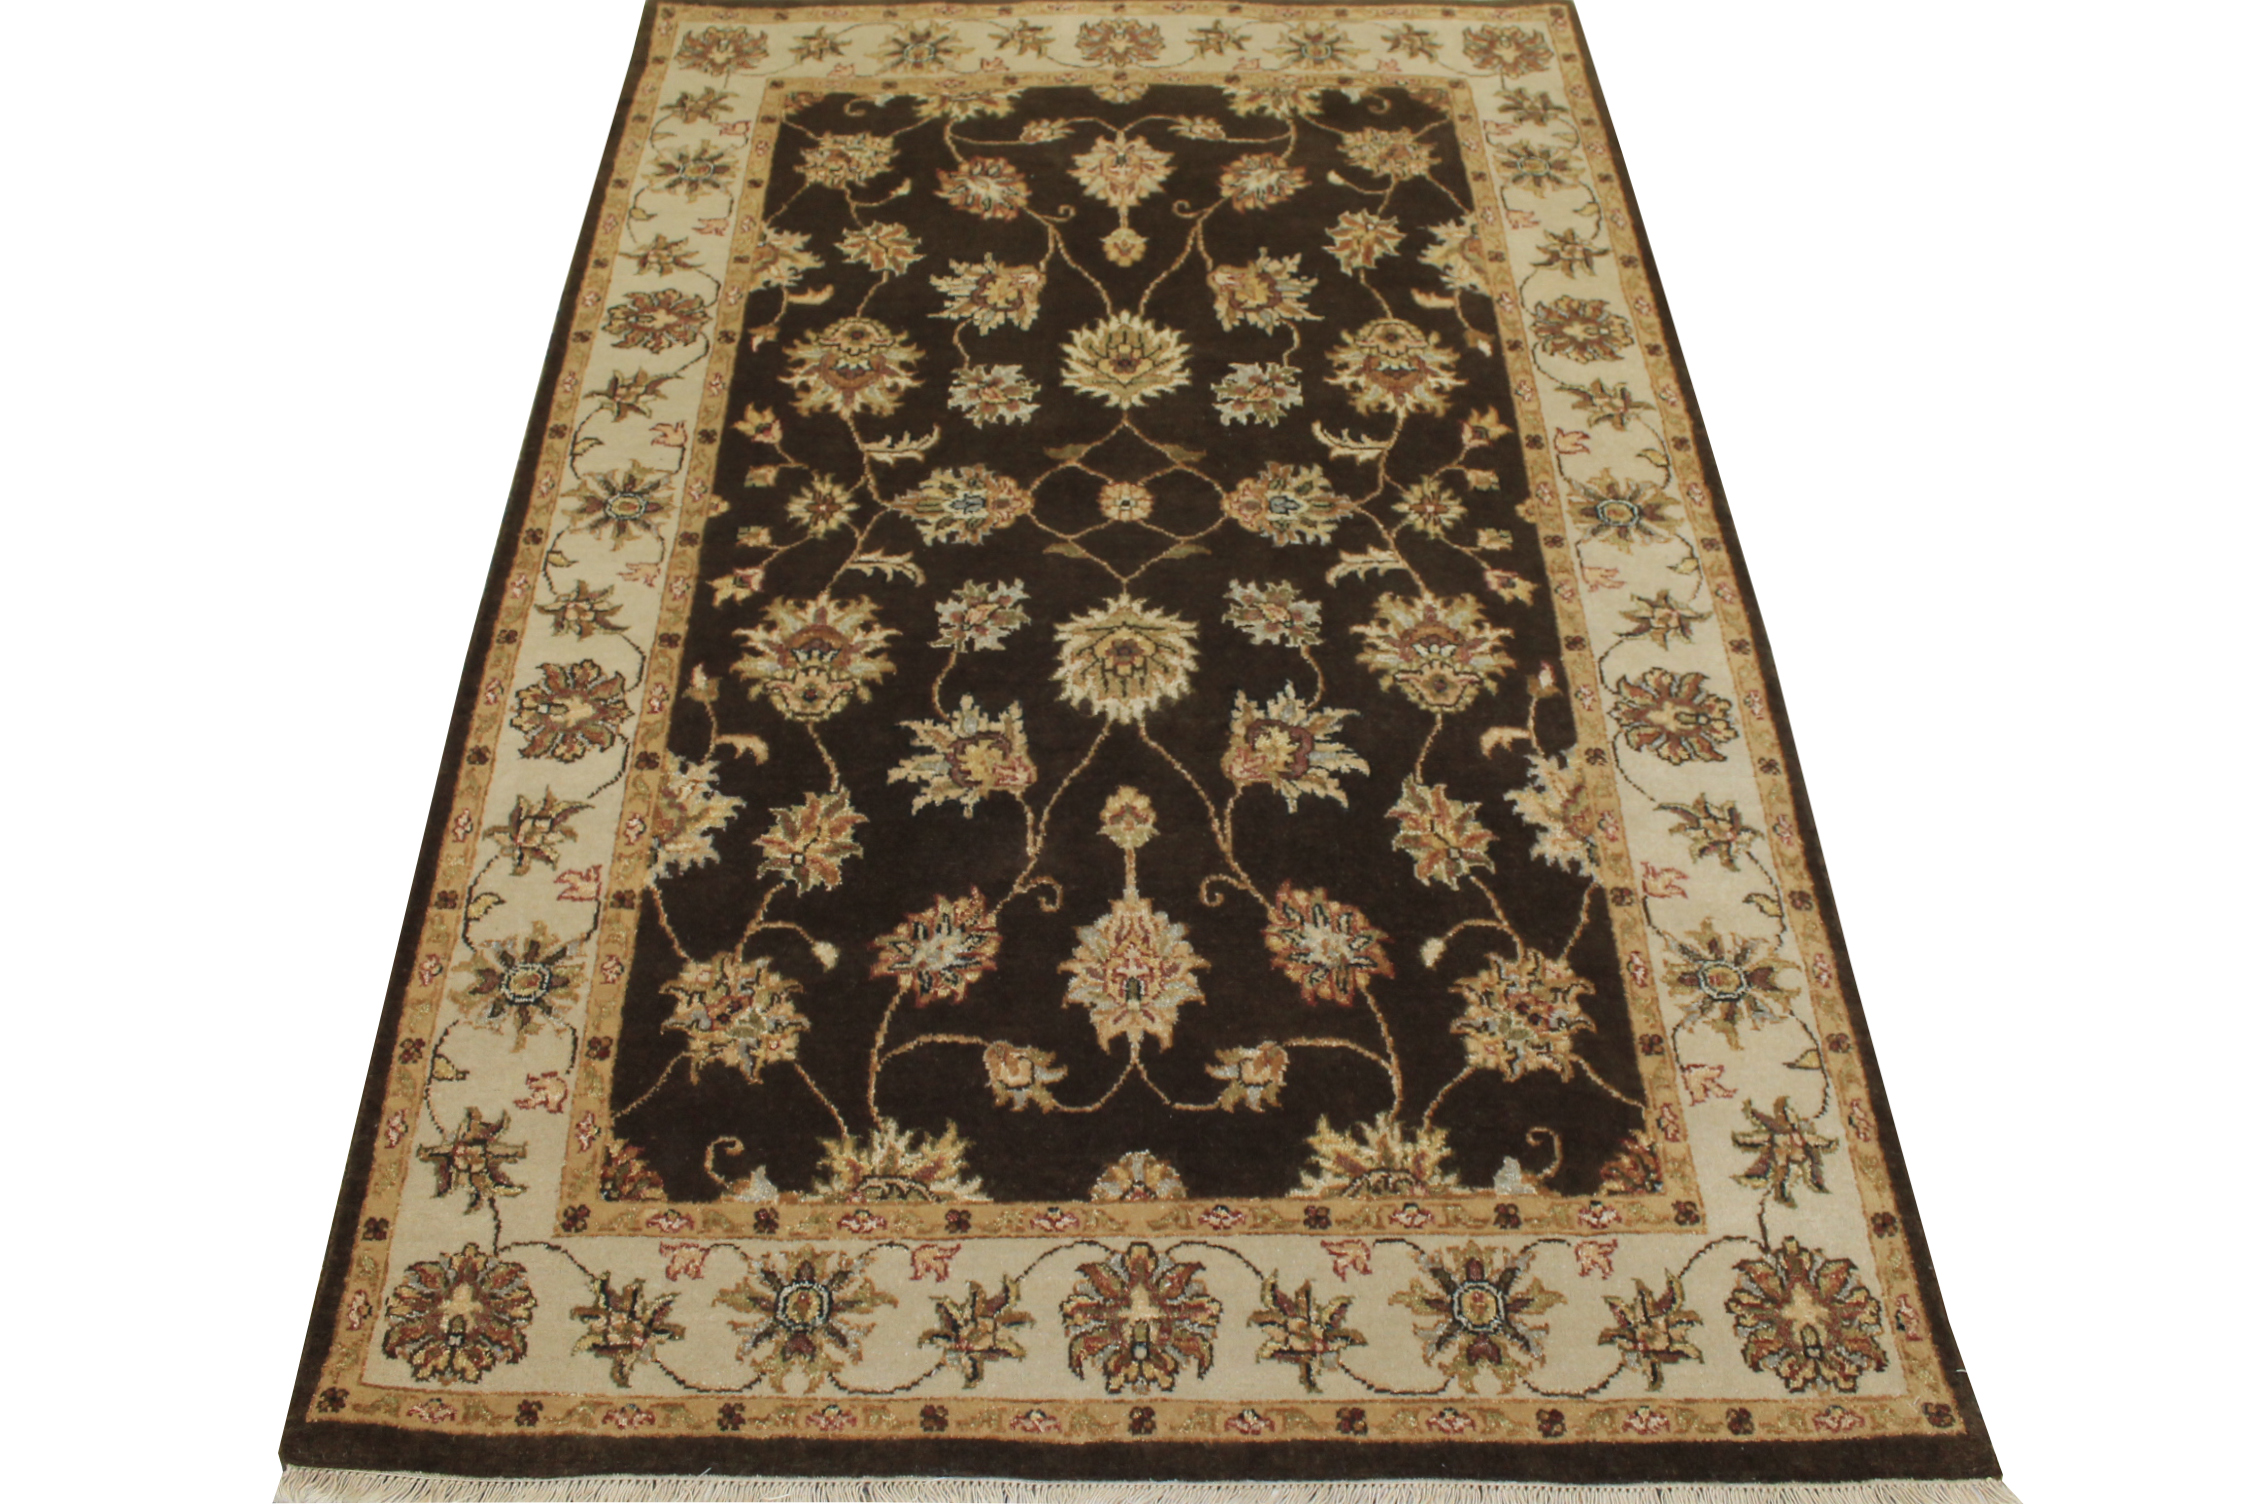 4x6 Traditional Hand Knotted Wool Area Rug - MR12239